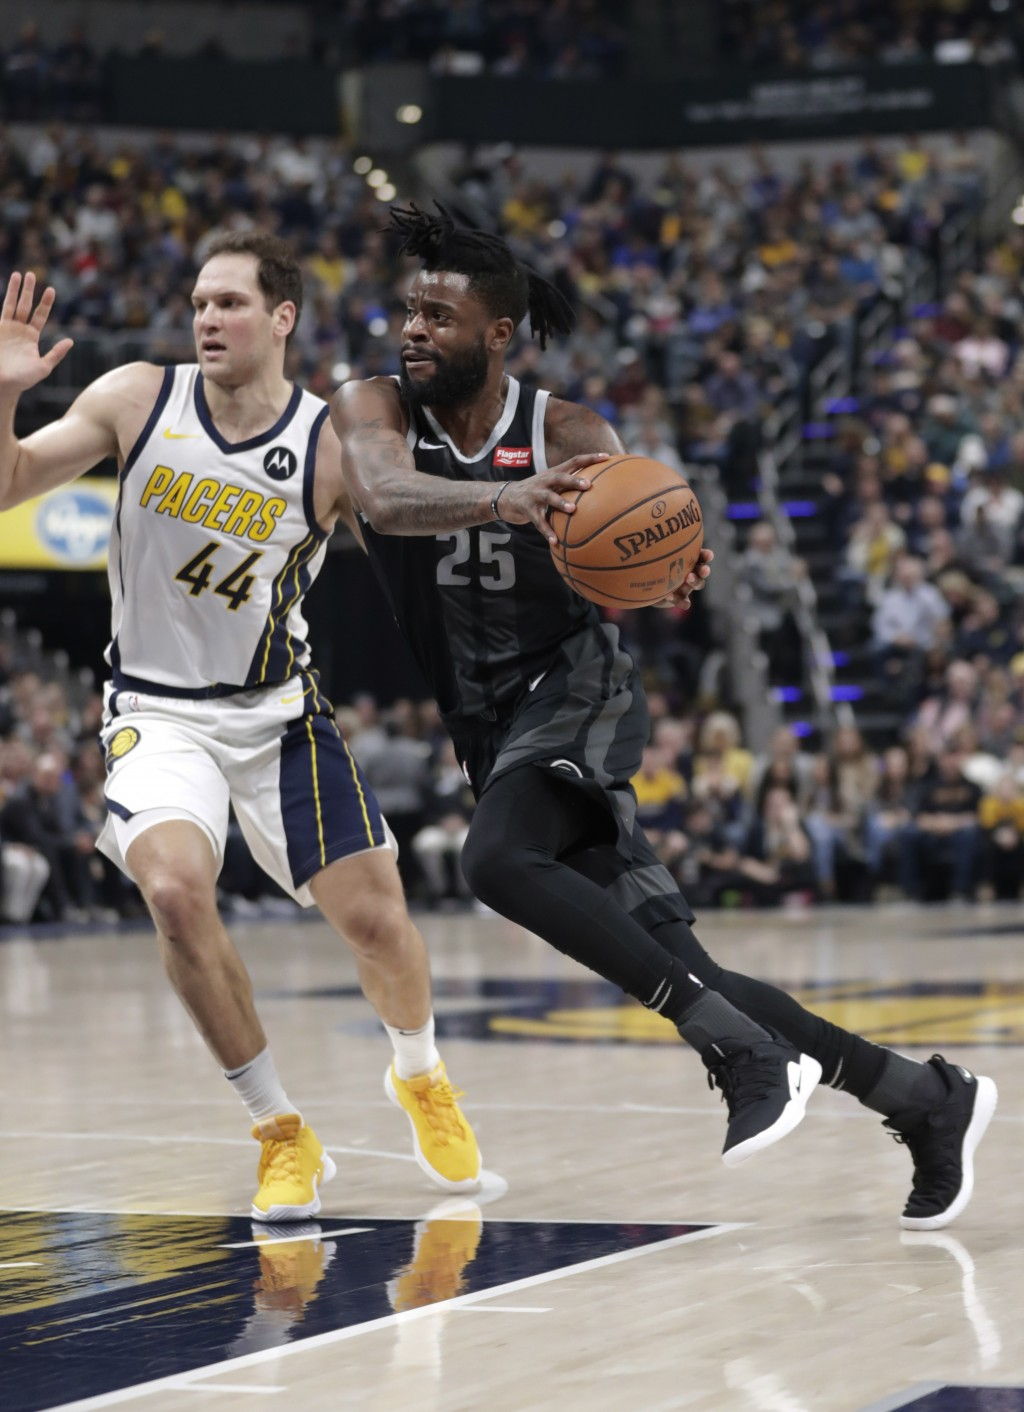 Detroit Pistons guard Reggie Bullock (25) drives on Indiana Pacers forward Bojan Bogdanovic (44) during the first half of an NBA basketball game in In...